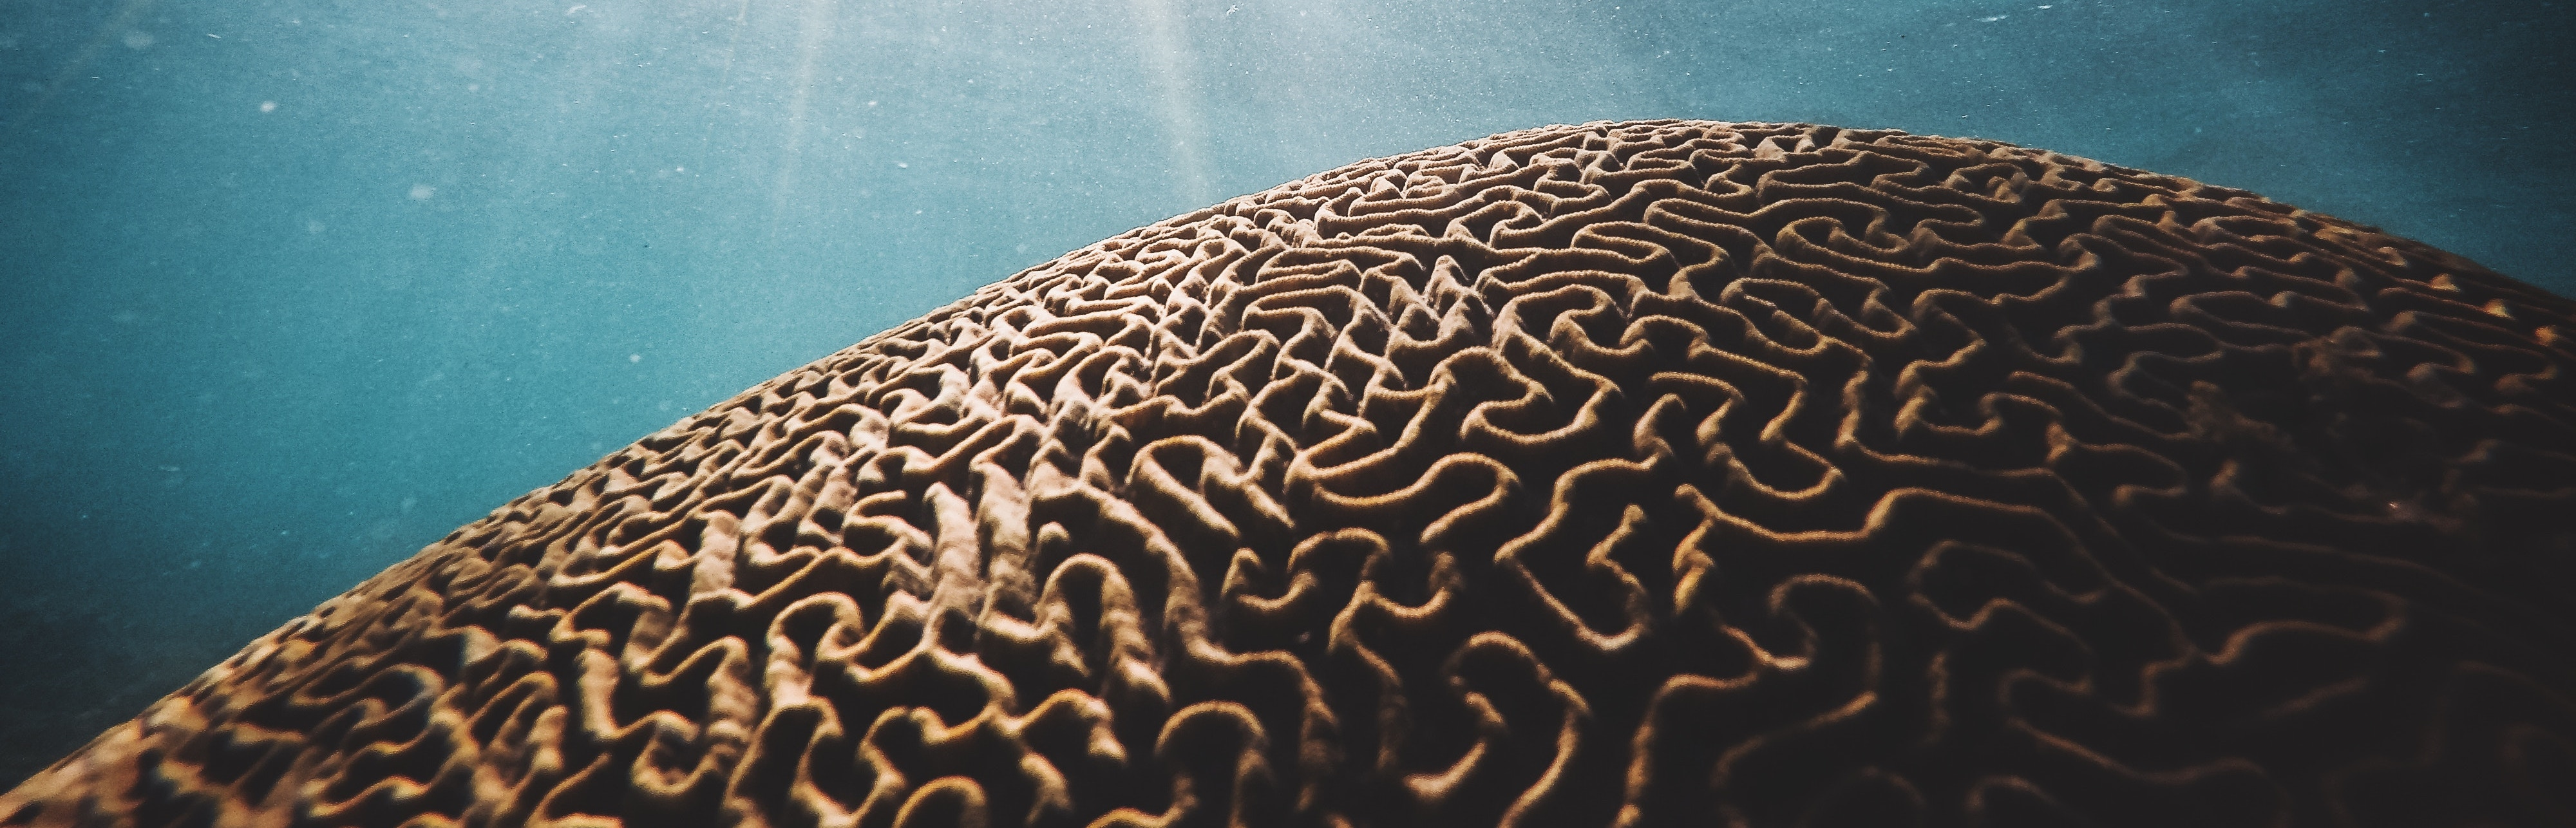 brain coral to demonstrate deep learning